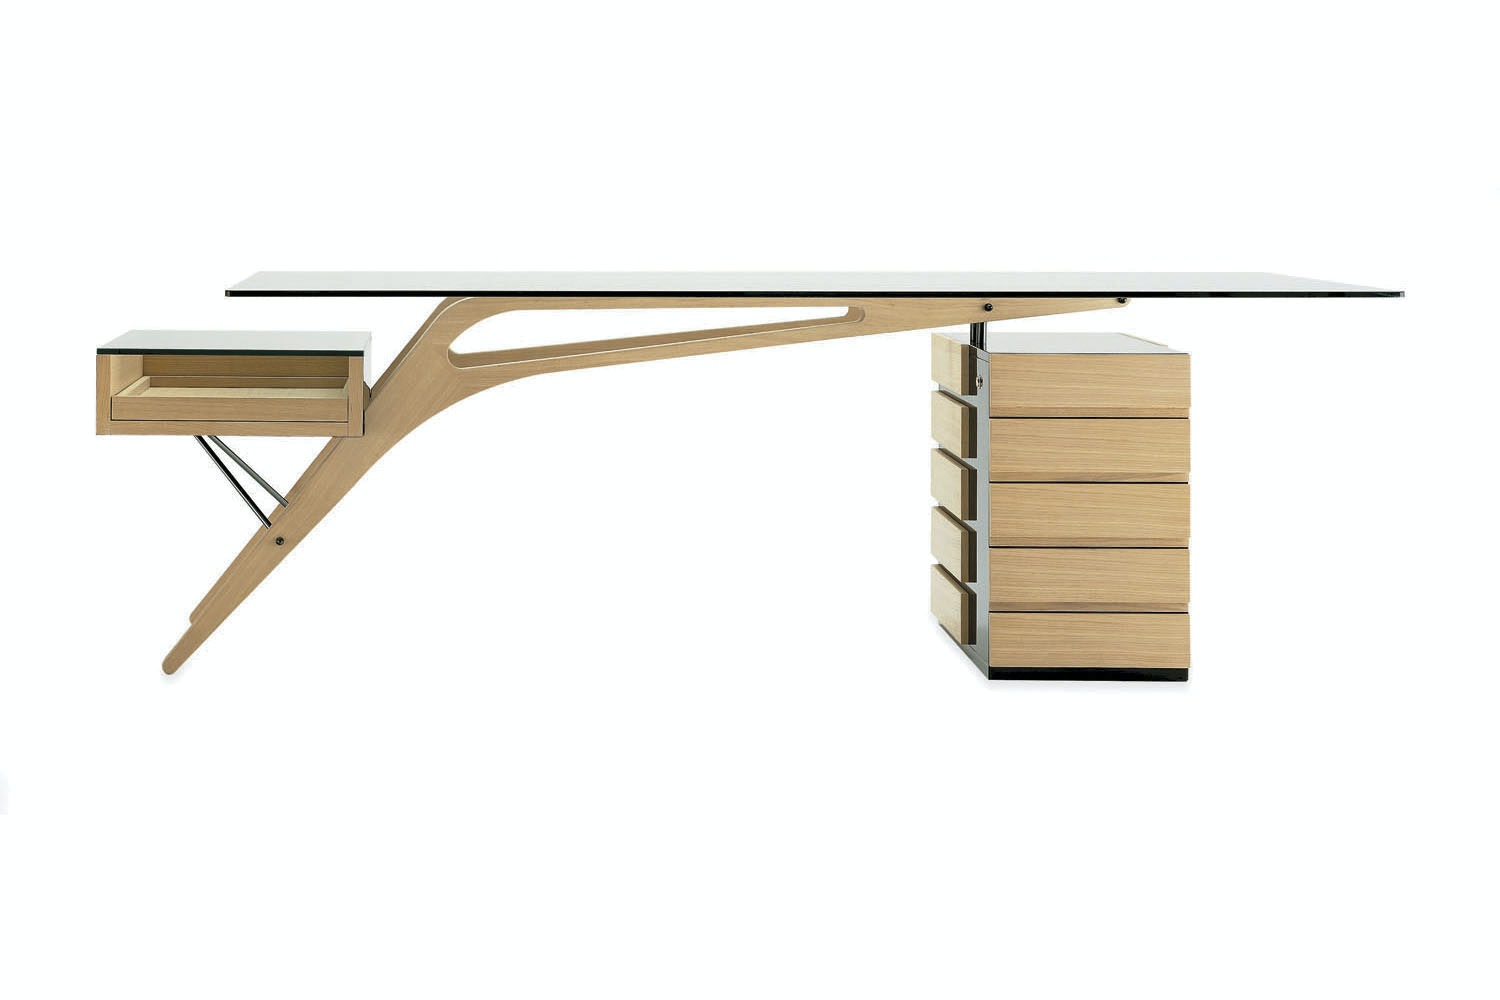 Cavour Desk by Carlo Mollino for Zanotta